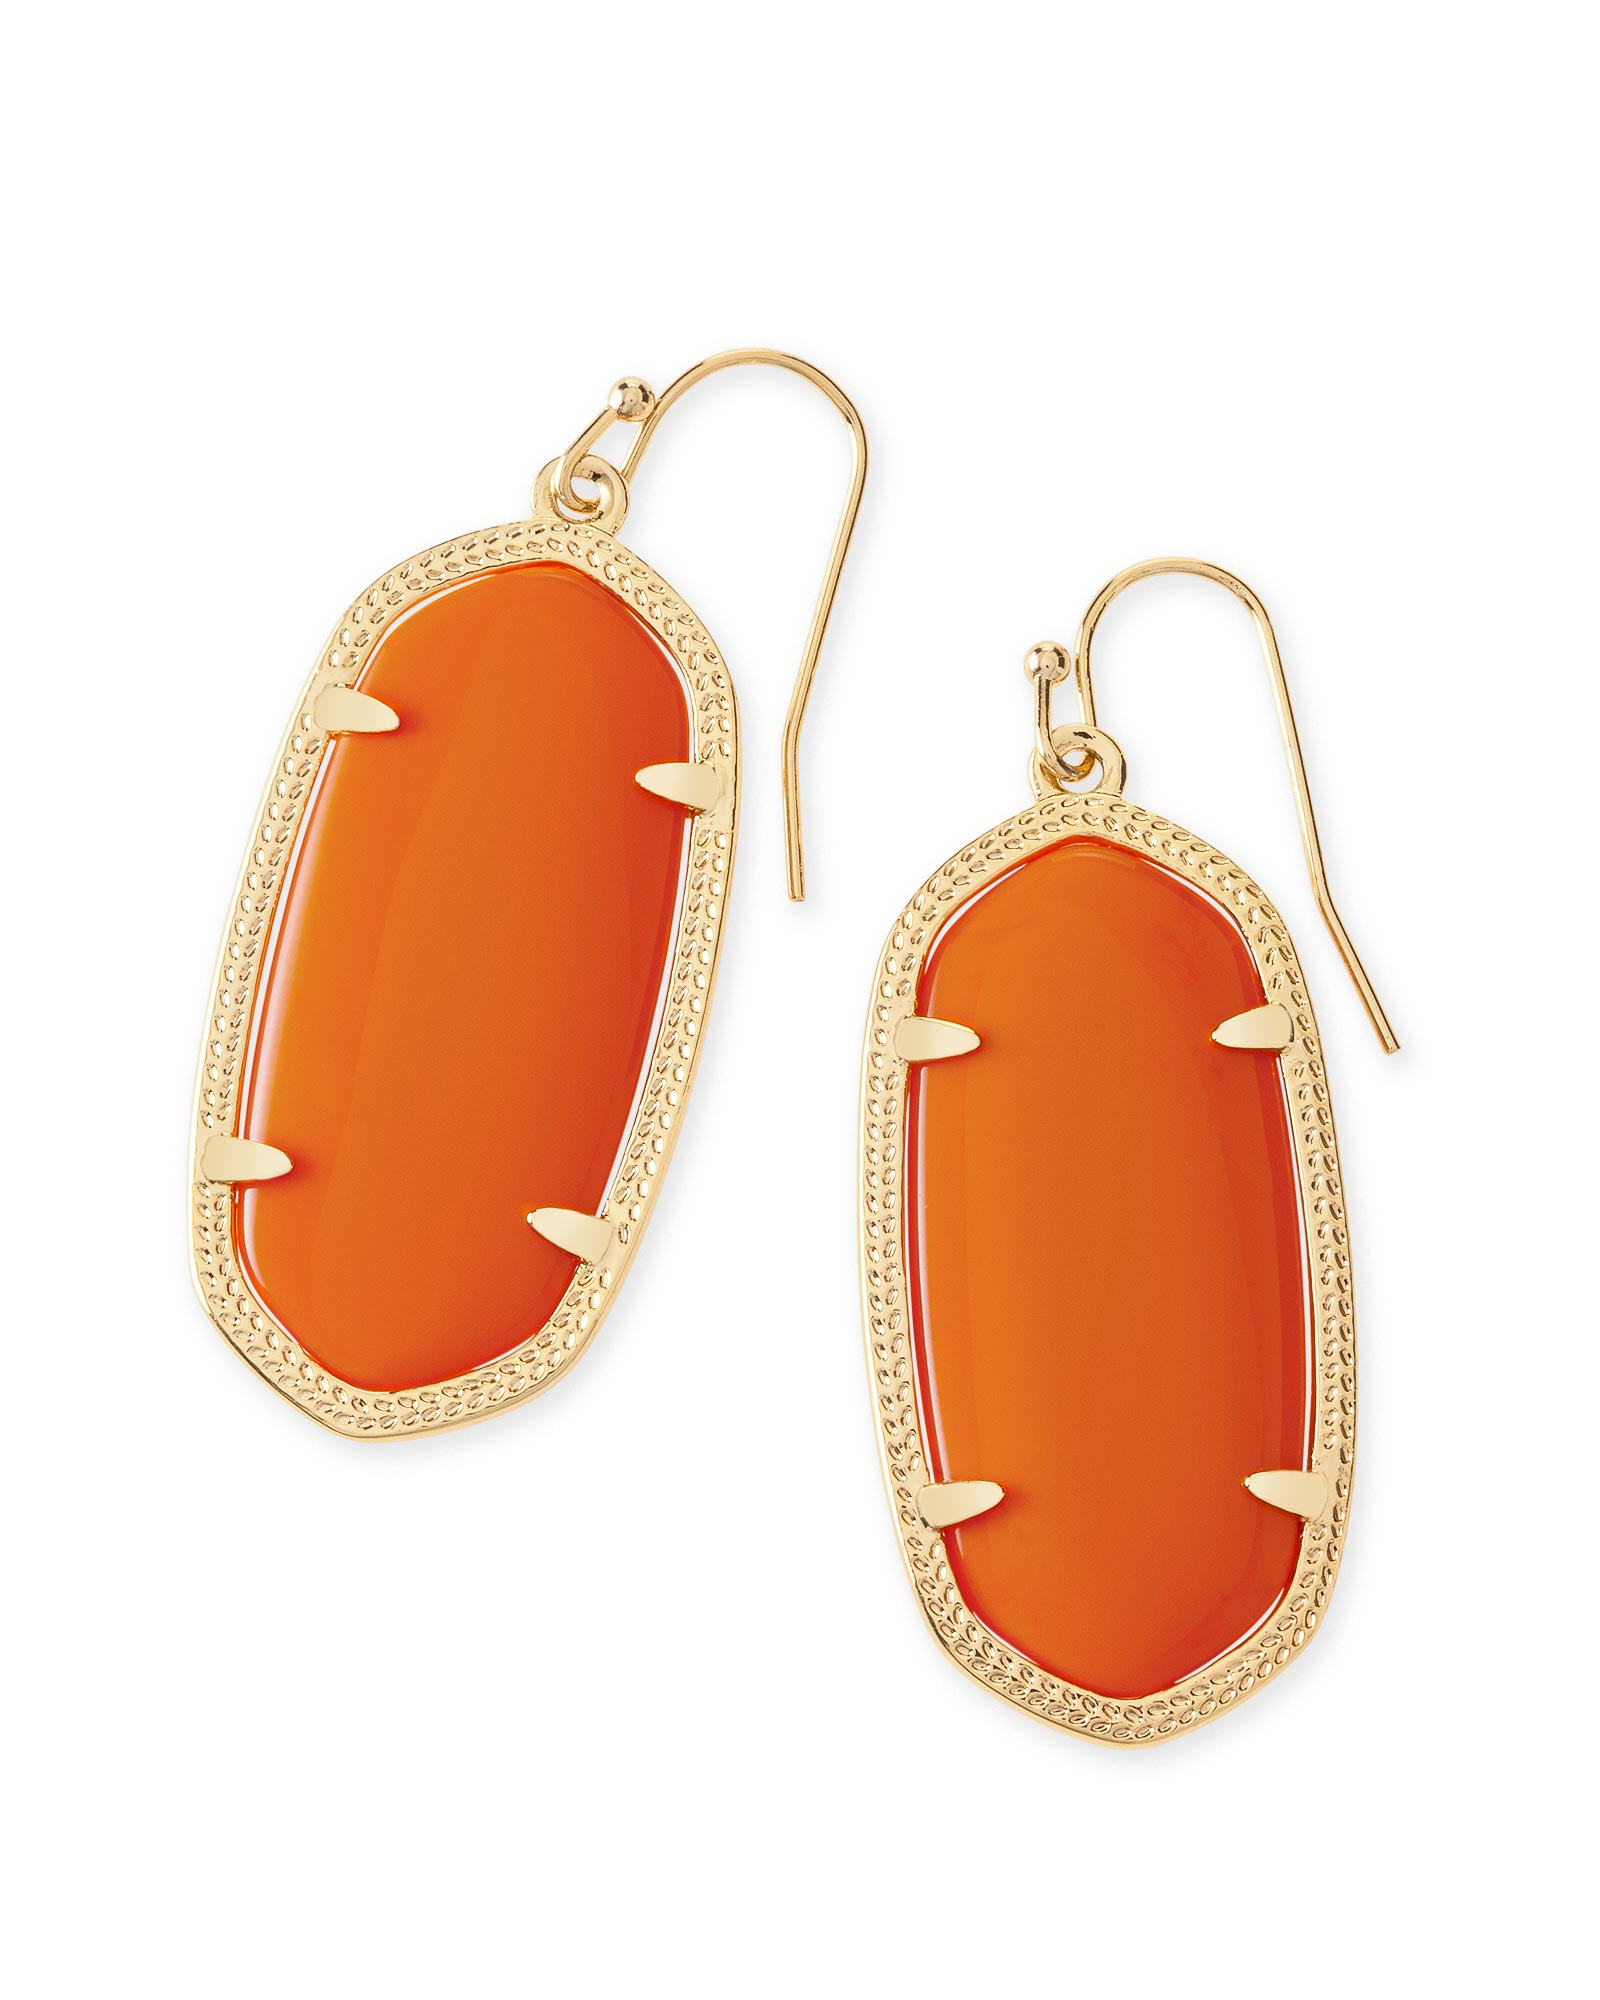 Elle Gold Drop Earrings In Orange